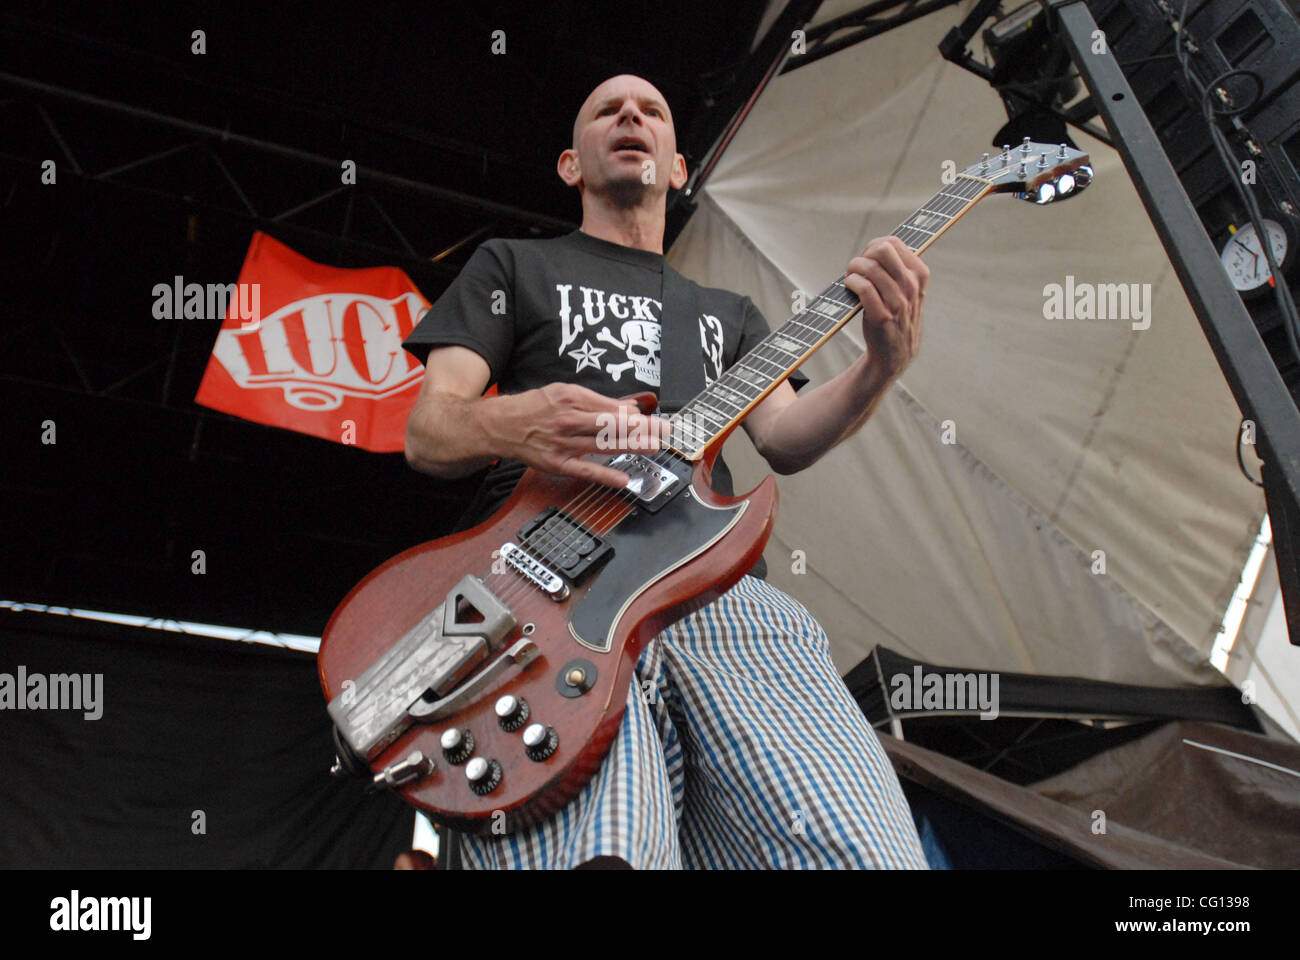 Jul. 23, 2007; Charlotte, NC USA; Guitarist GREG HETSON of the band BAD RELIGION performs live as part of the 13th - Stock Image